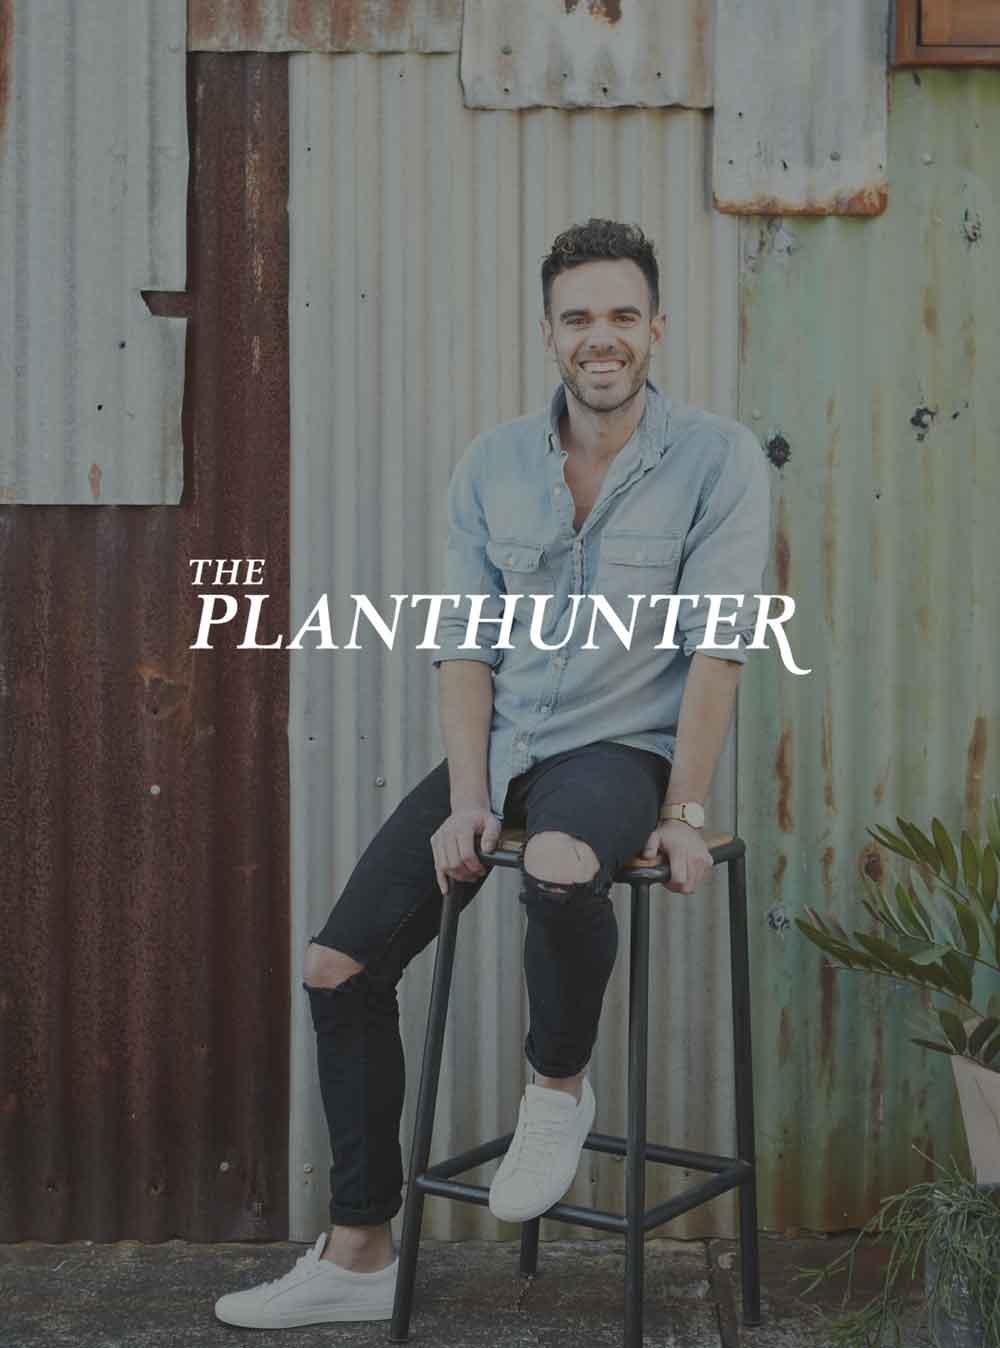 The Planthunter - 'Gutter Talk with Adam Robinson'Dec 19, 2017